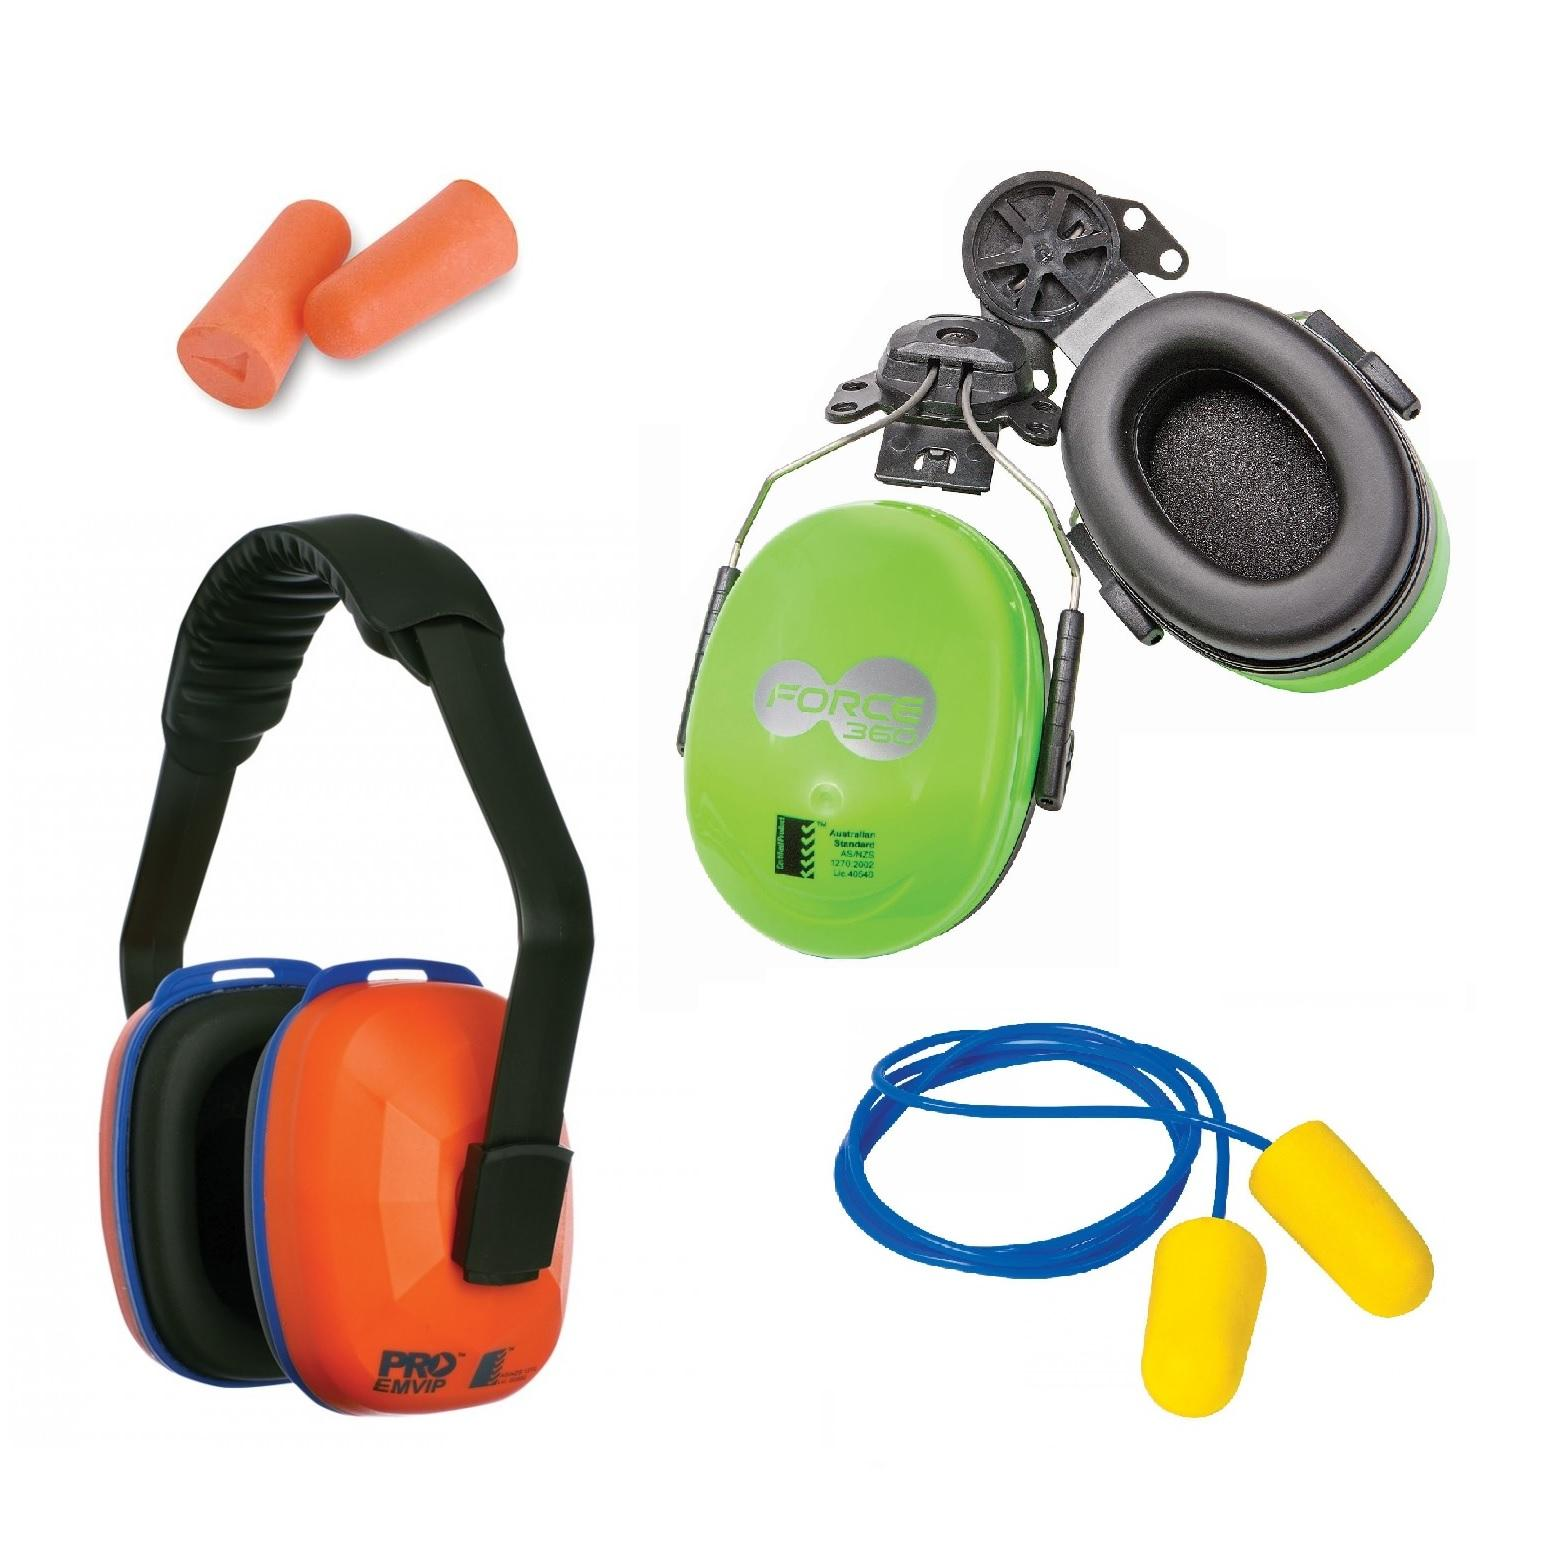 19. Hearing Protection